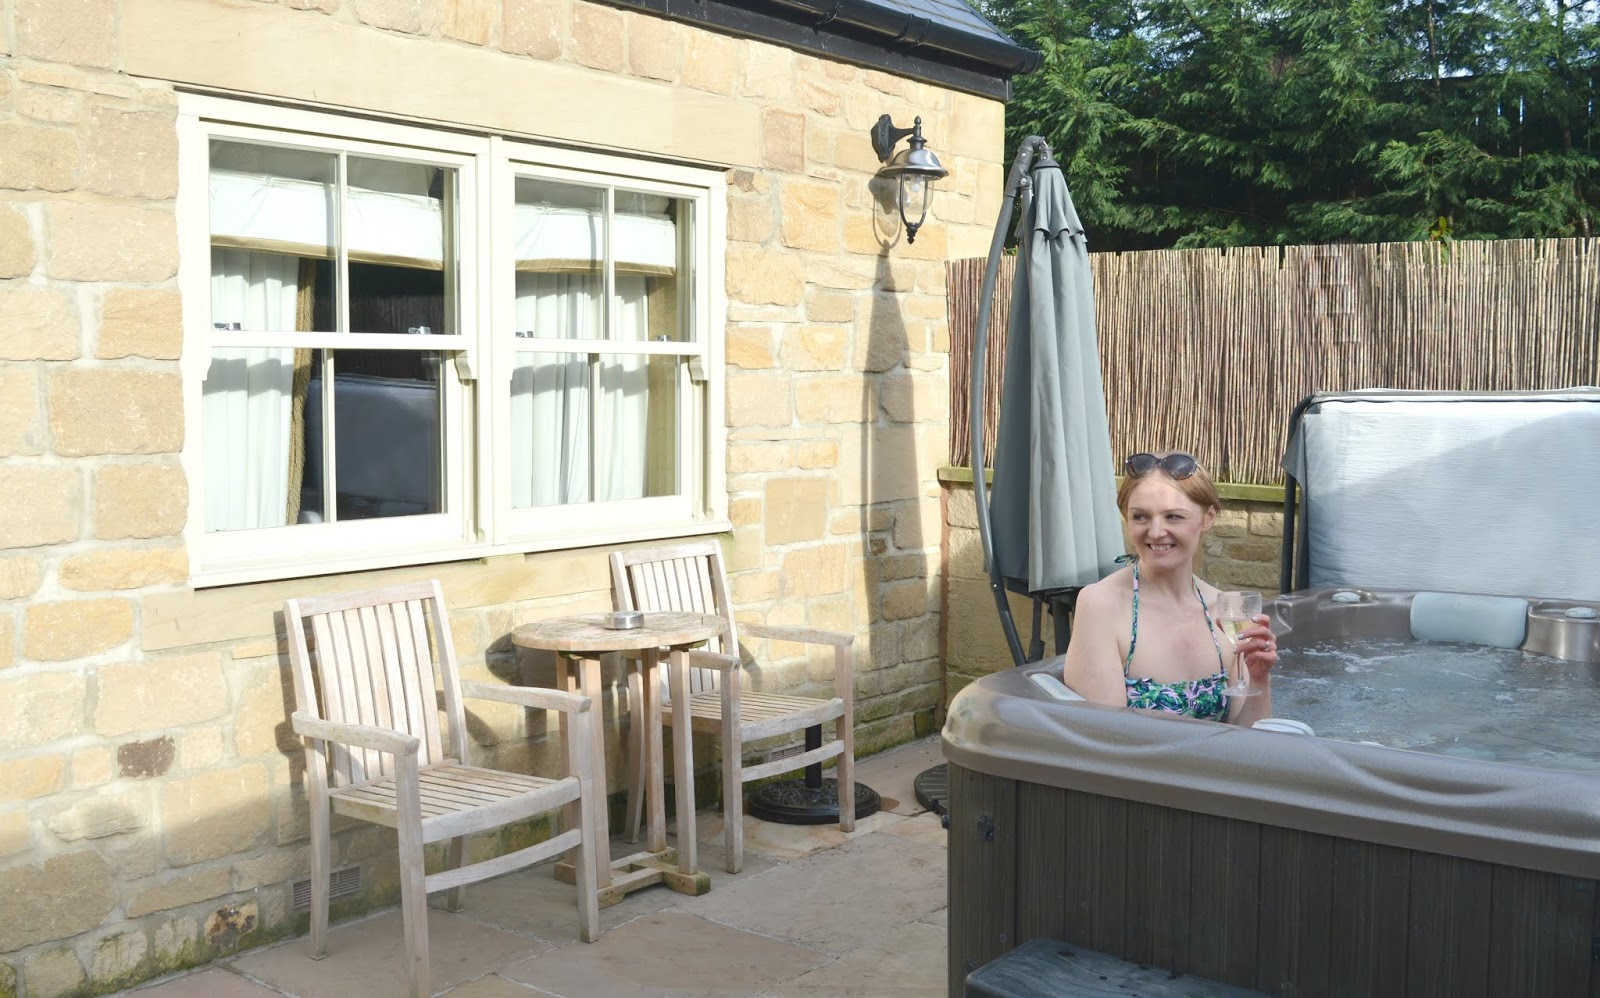 Luxury Room and Hot Tub at Crab & Lobster, Thirsk